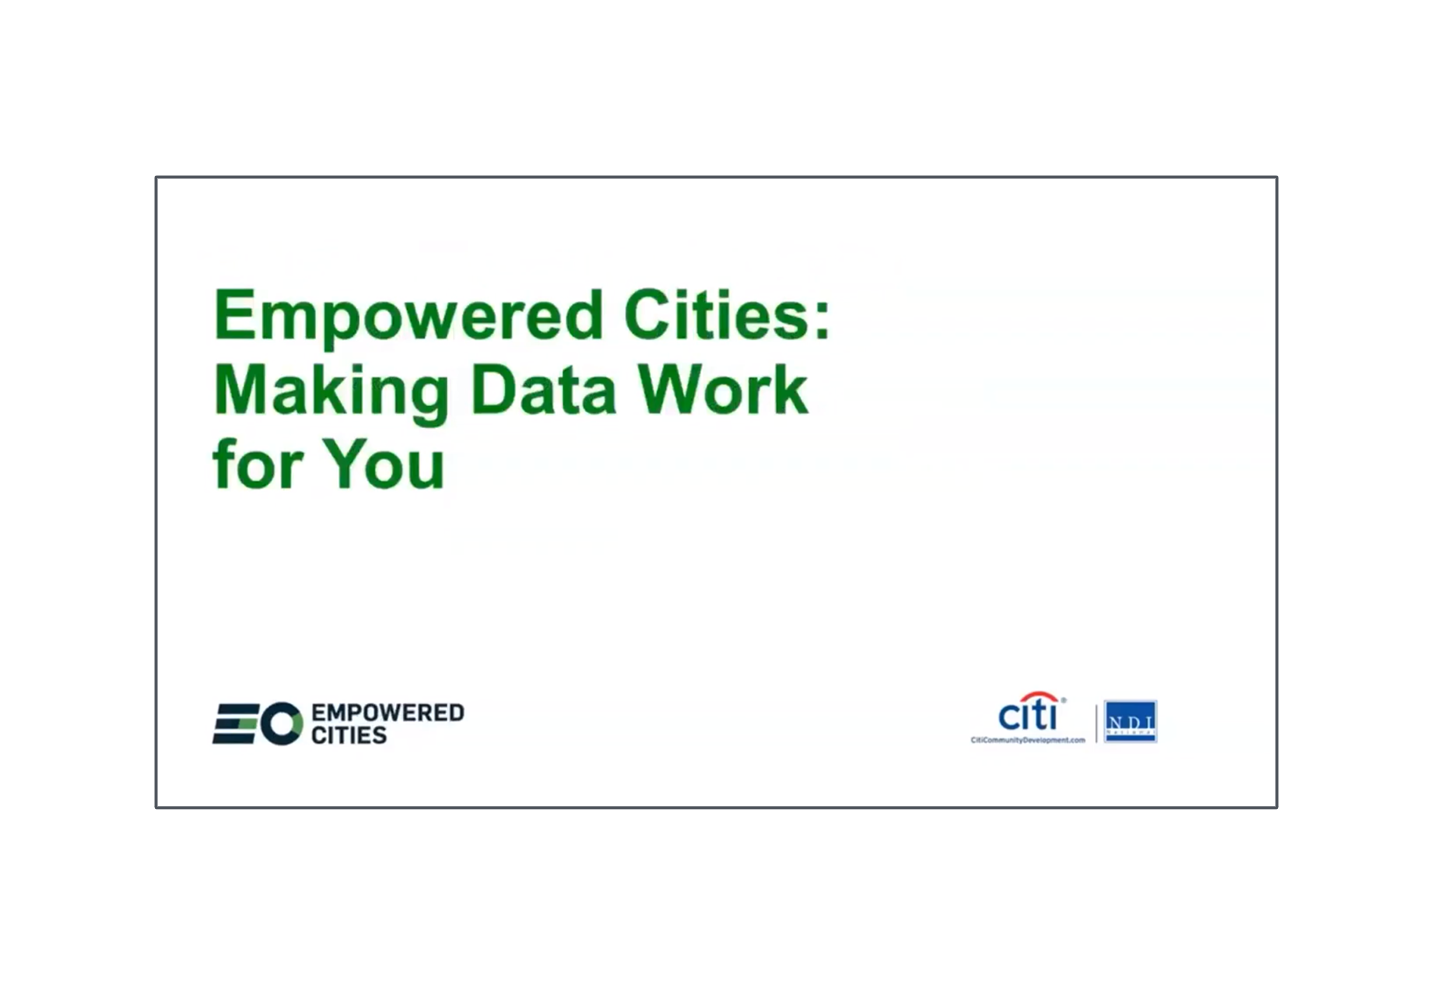 Making Data Work for You